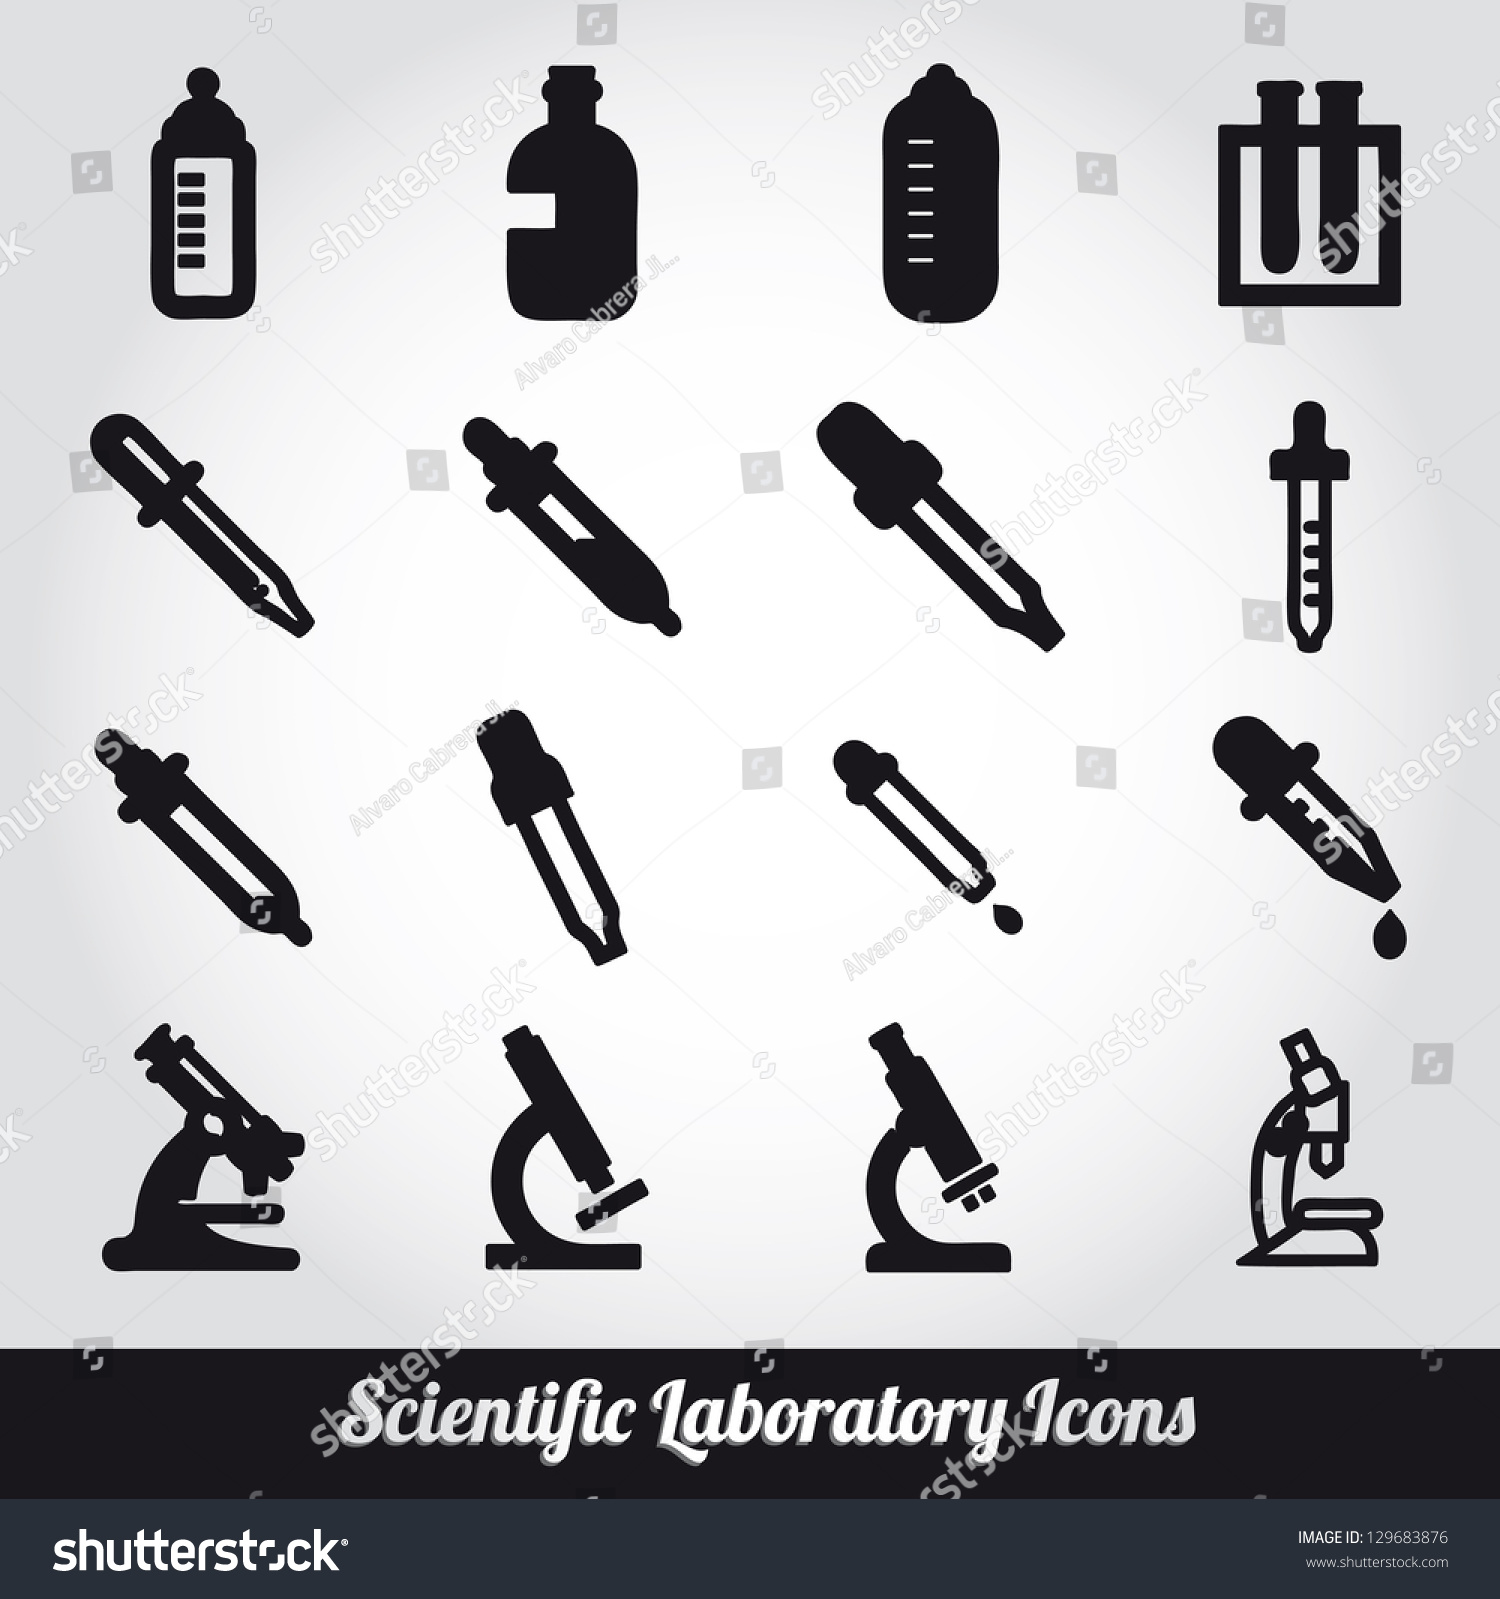 Set Of Scientific Laboratory Equipment Symbols Stock Vector Illustration Shutterstock